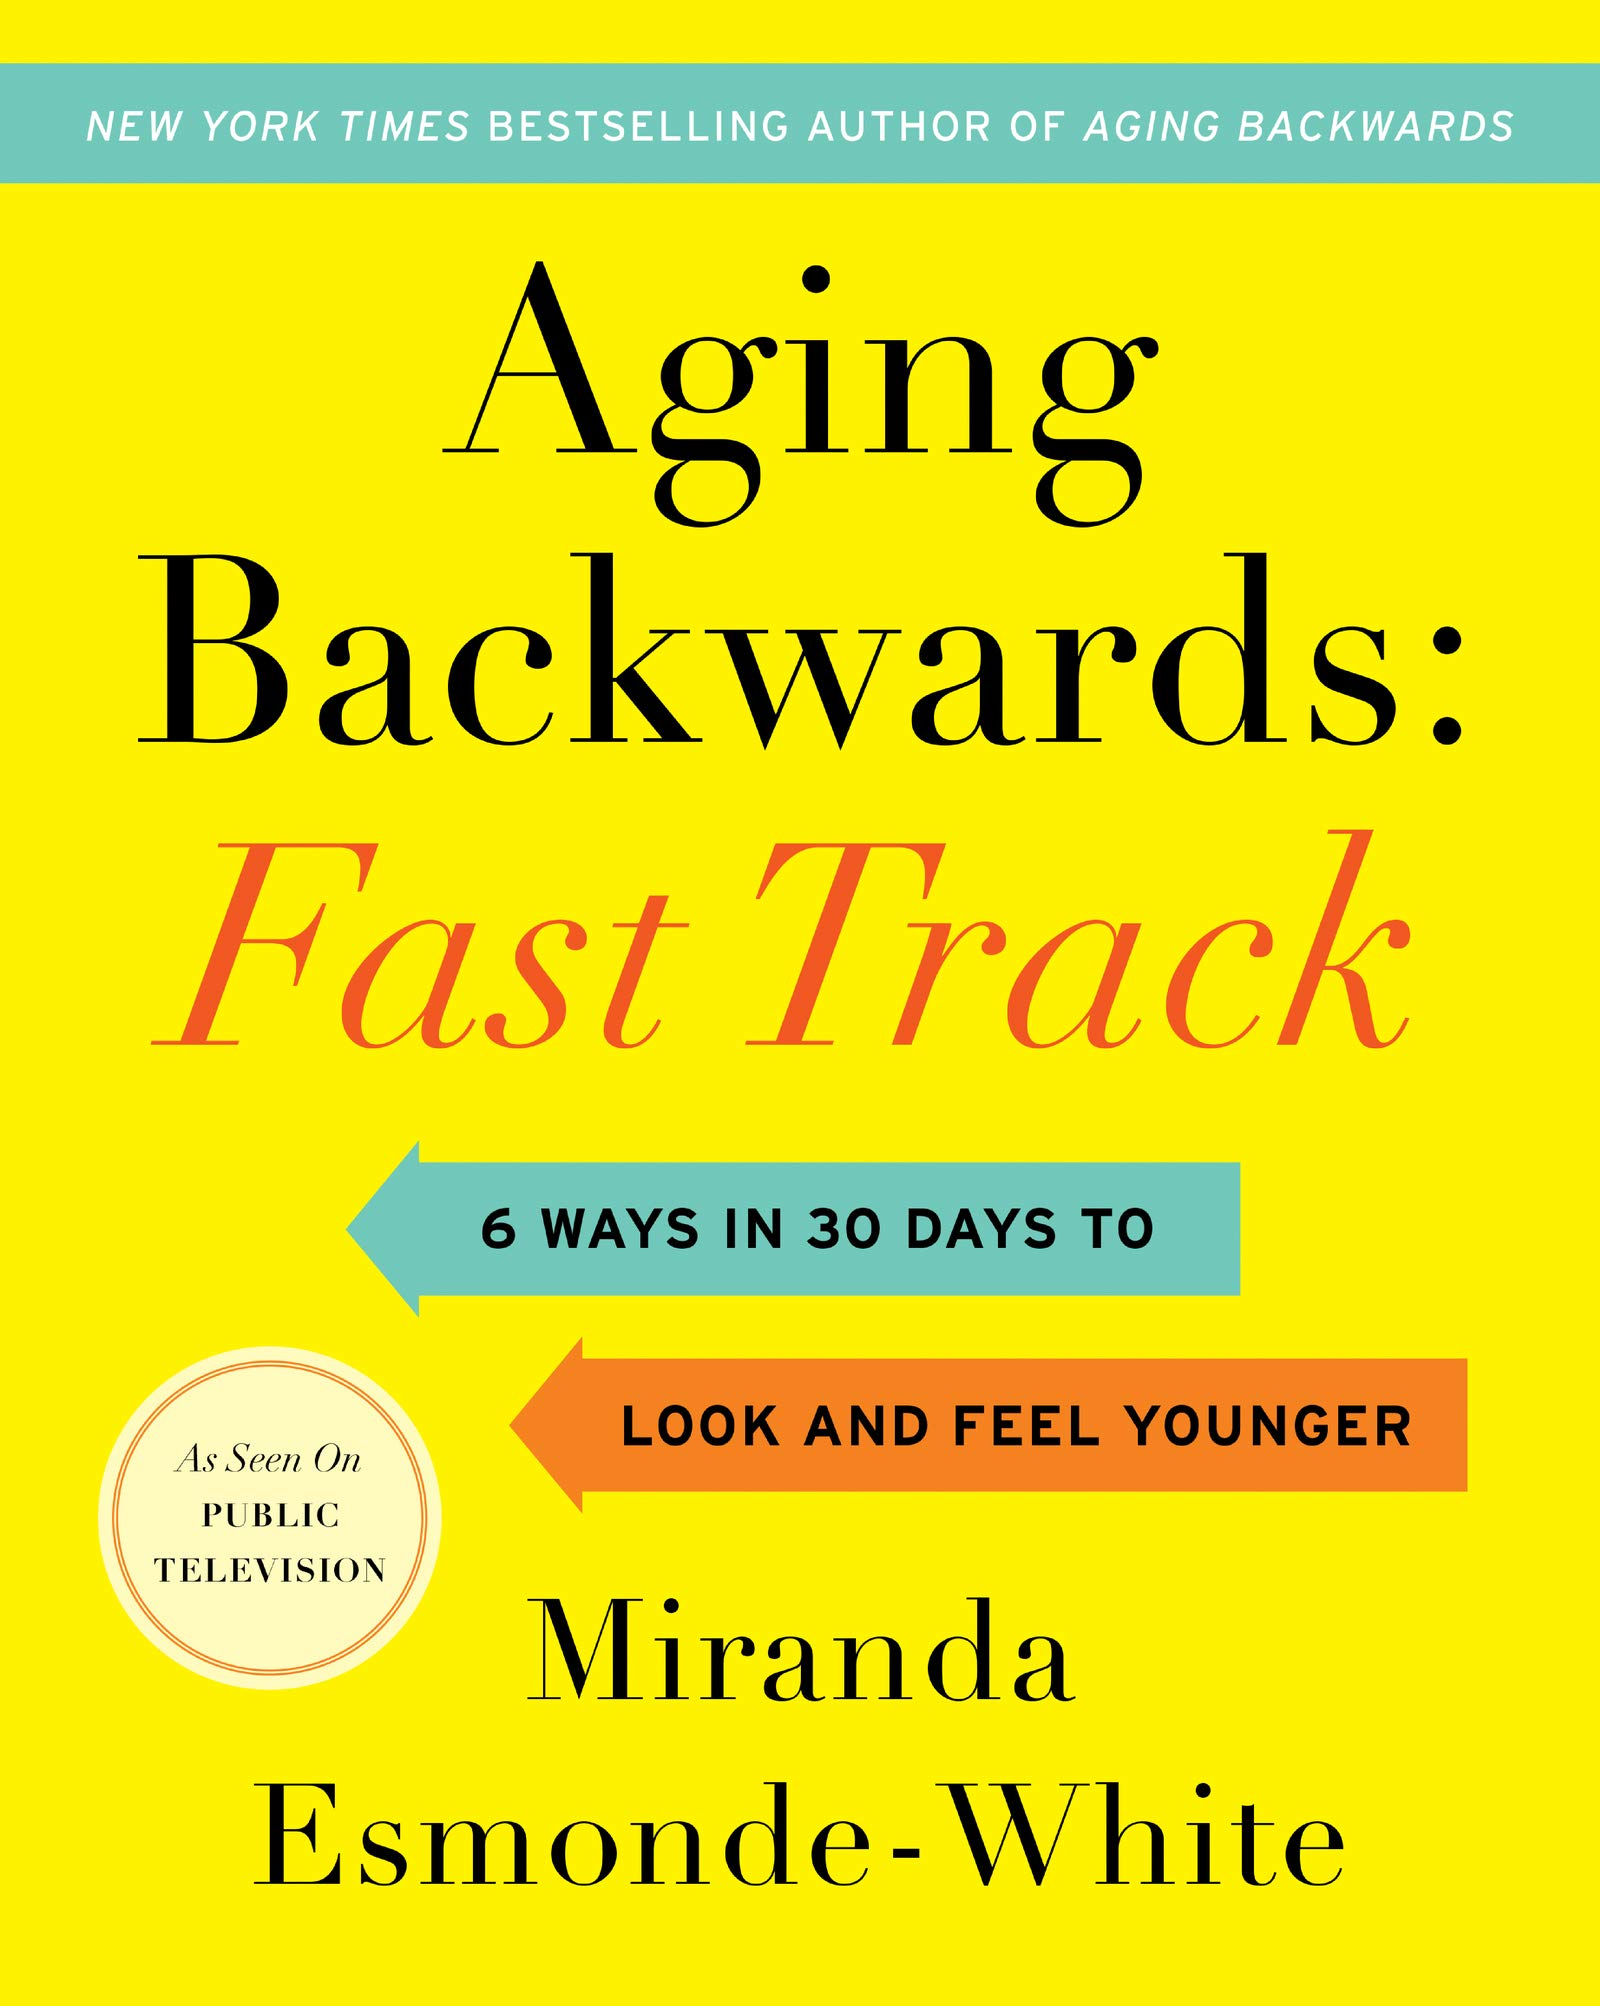 Aging Backwards Fast Track Younger product image